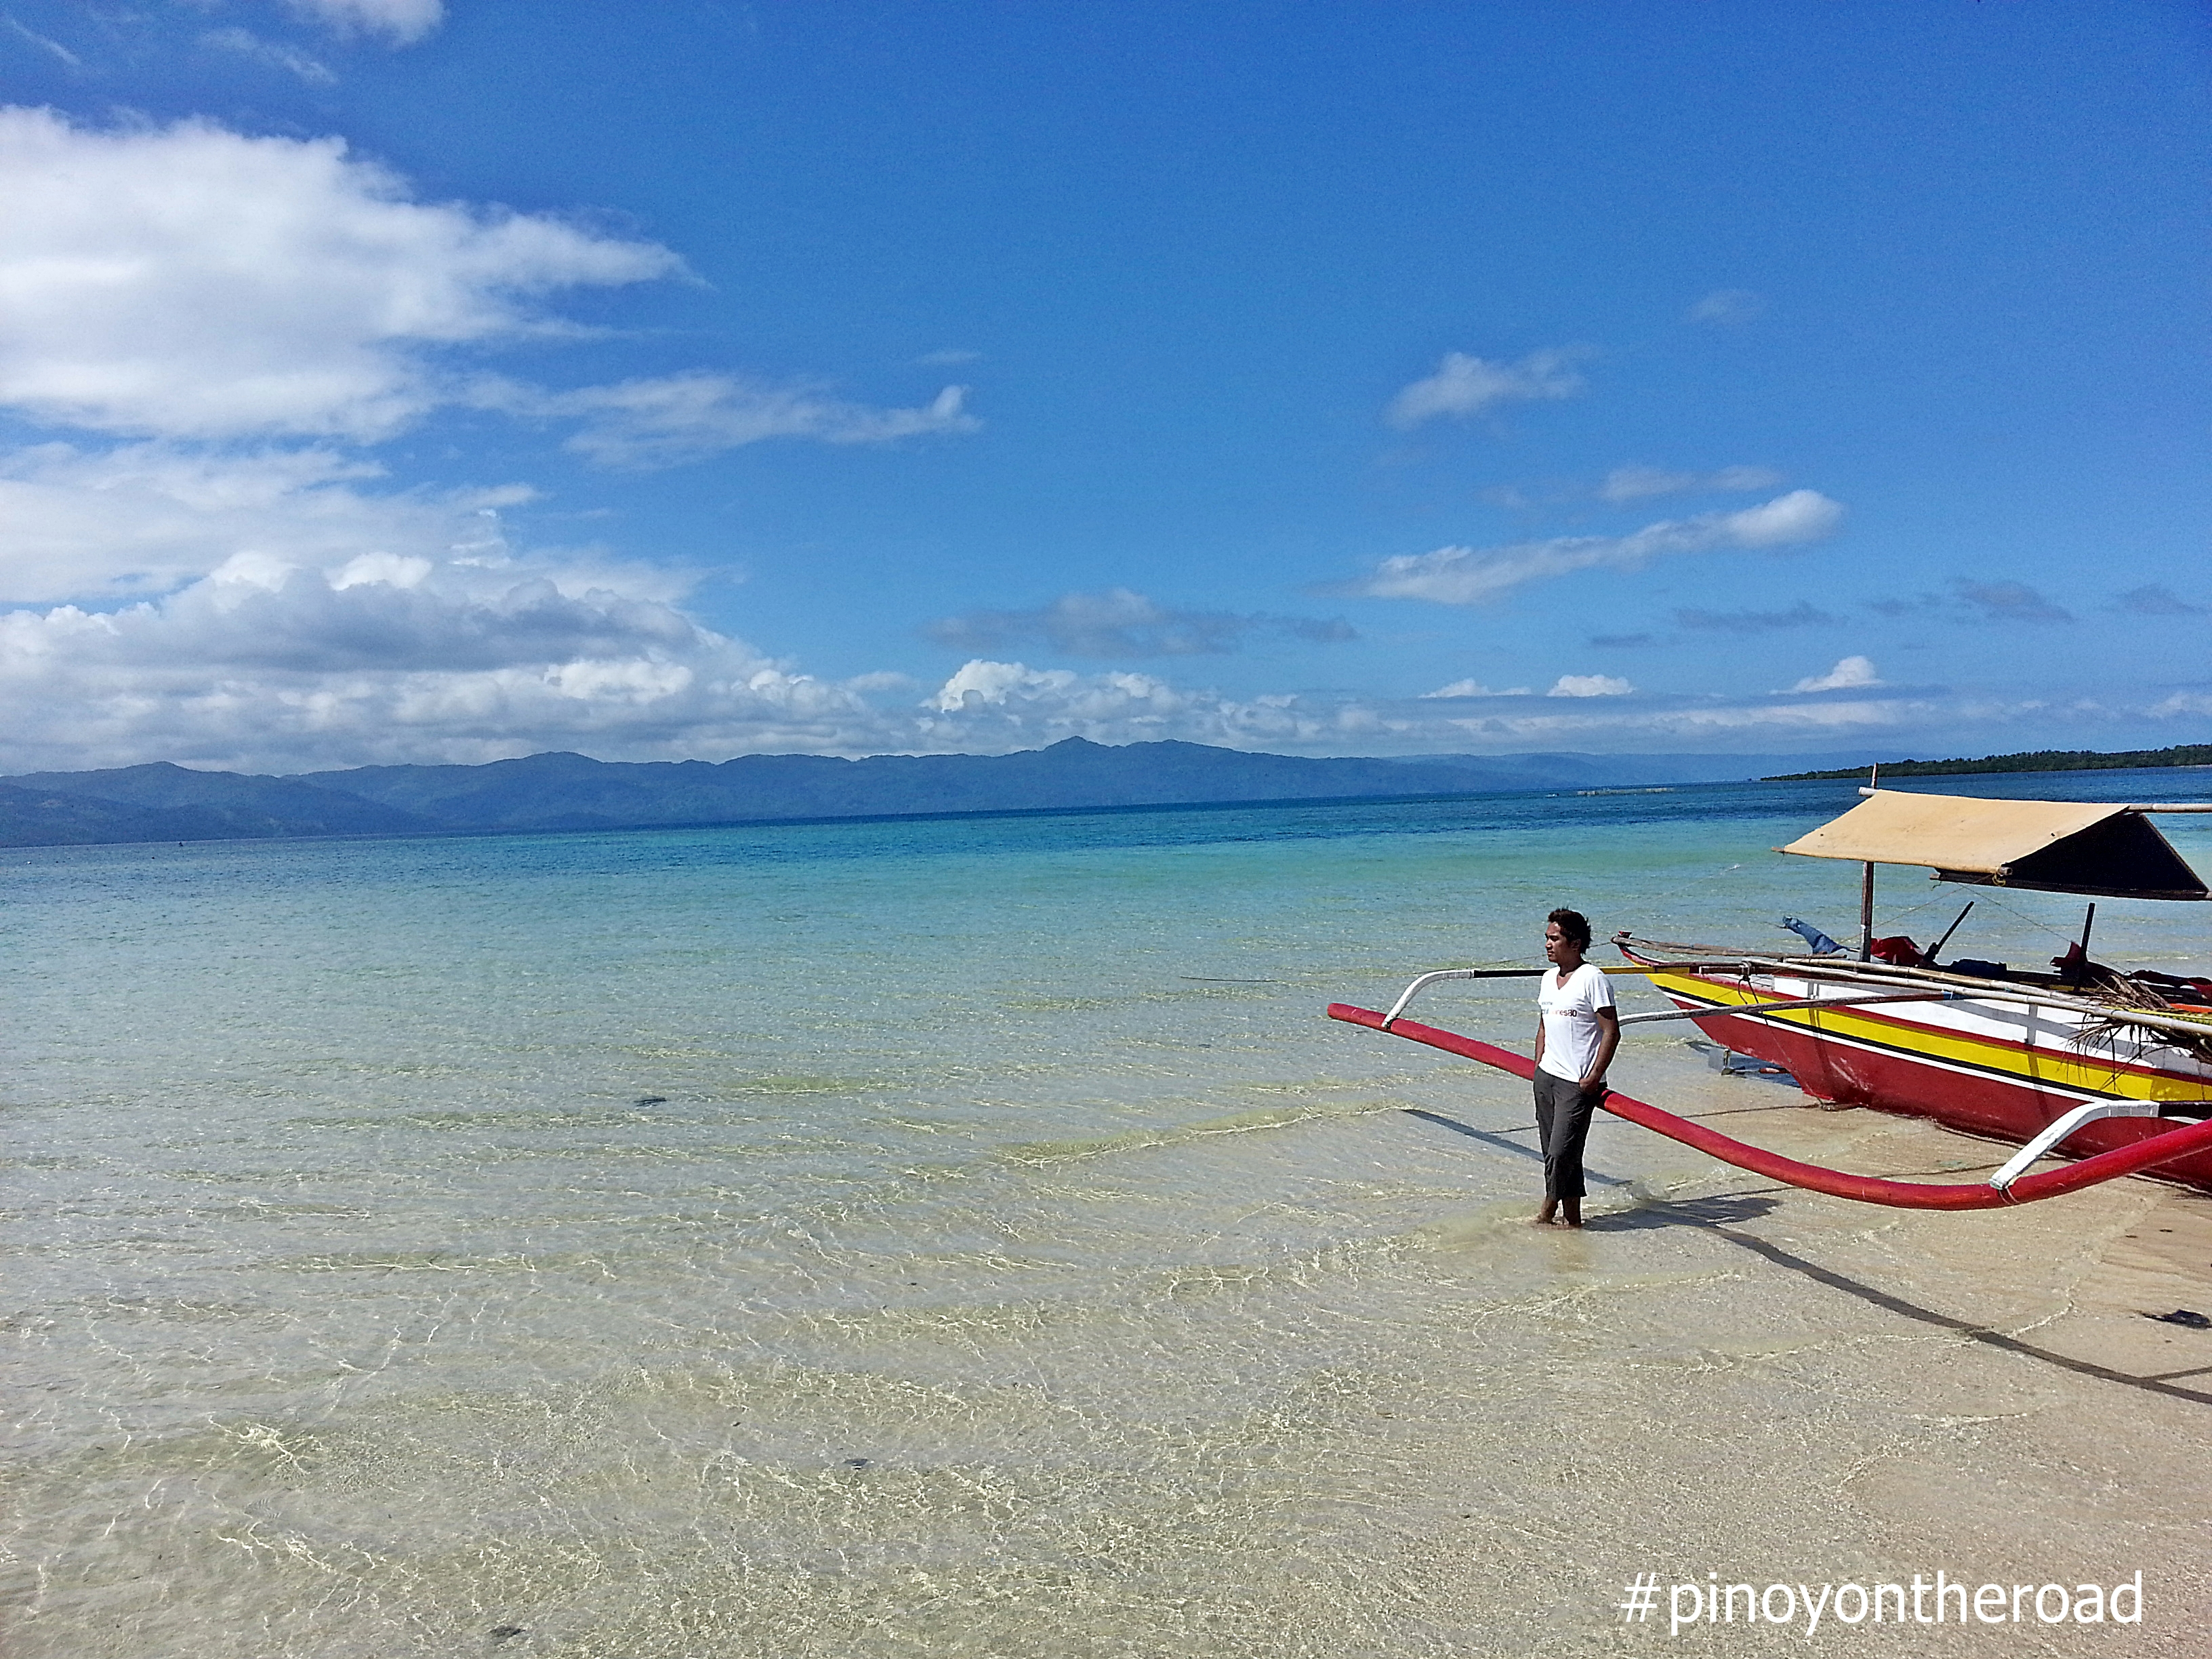 the white sands of cagbalete island pinoyontheroad quezon cagbalete island photo essay pinoy on the road